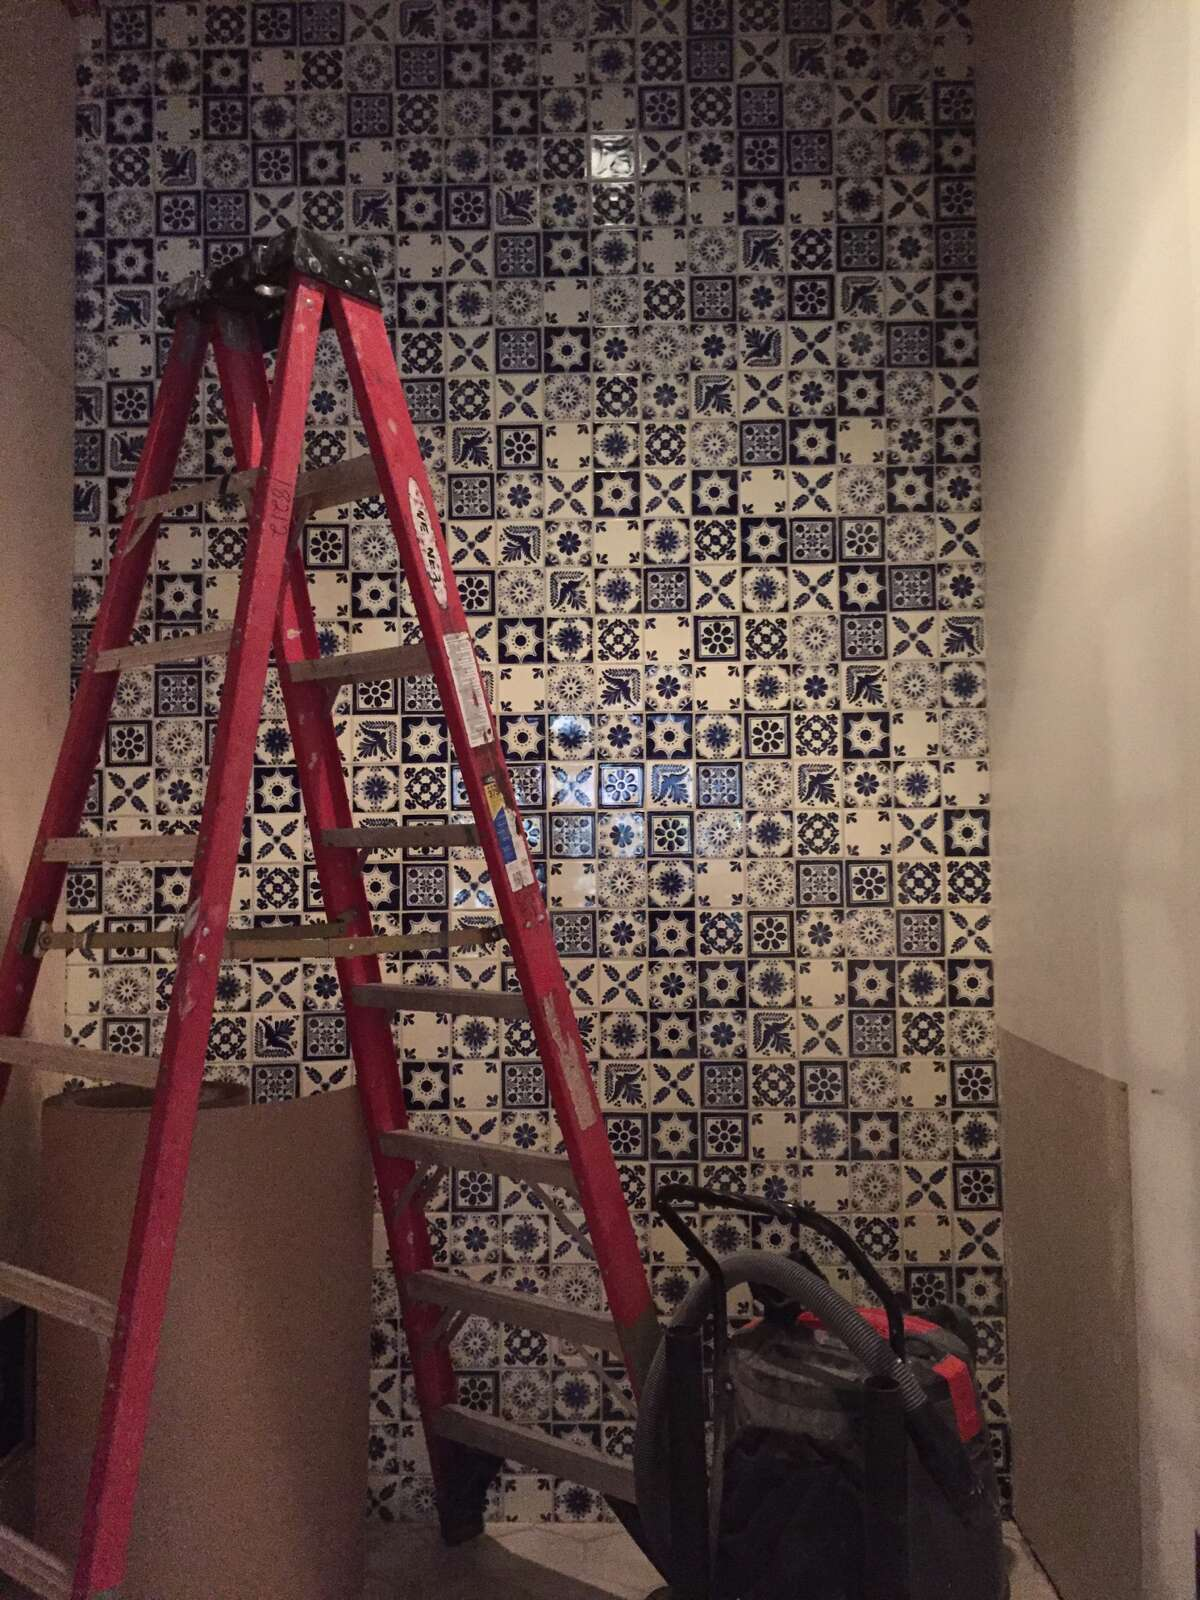 Spanish-style tiles at the soon-to-open Dorrregos restaurant